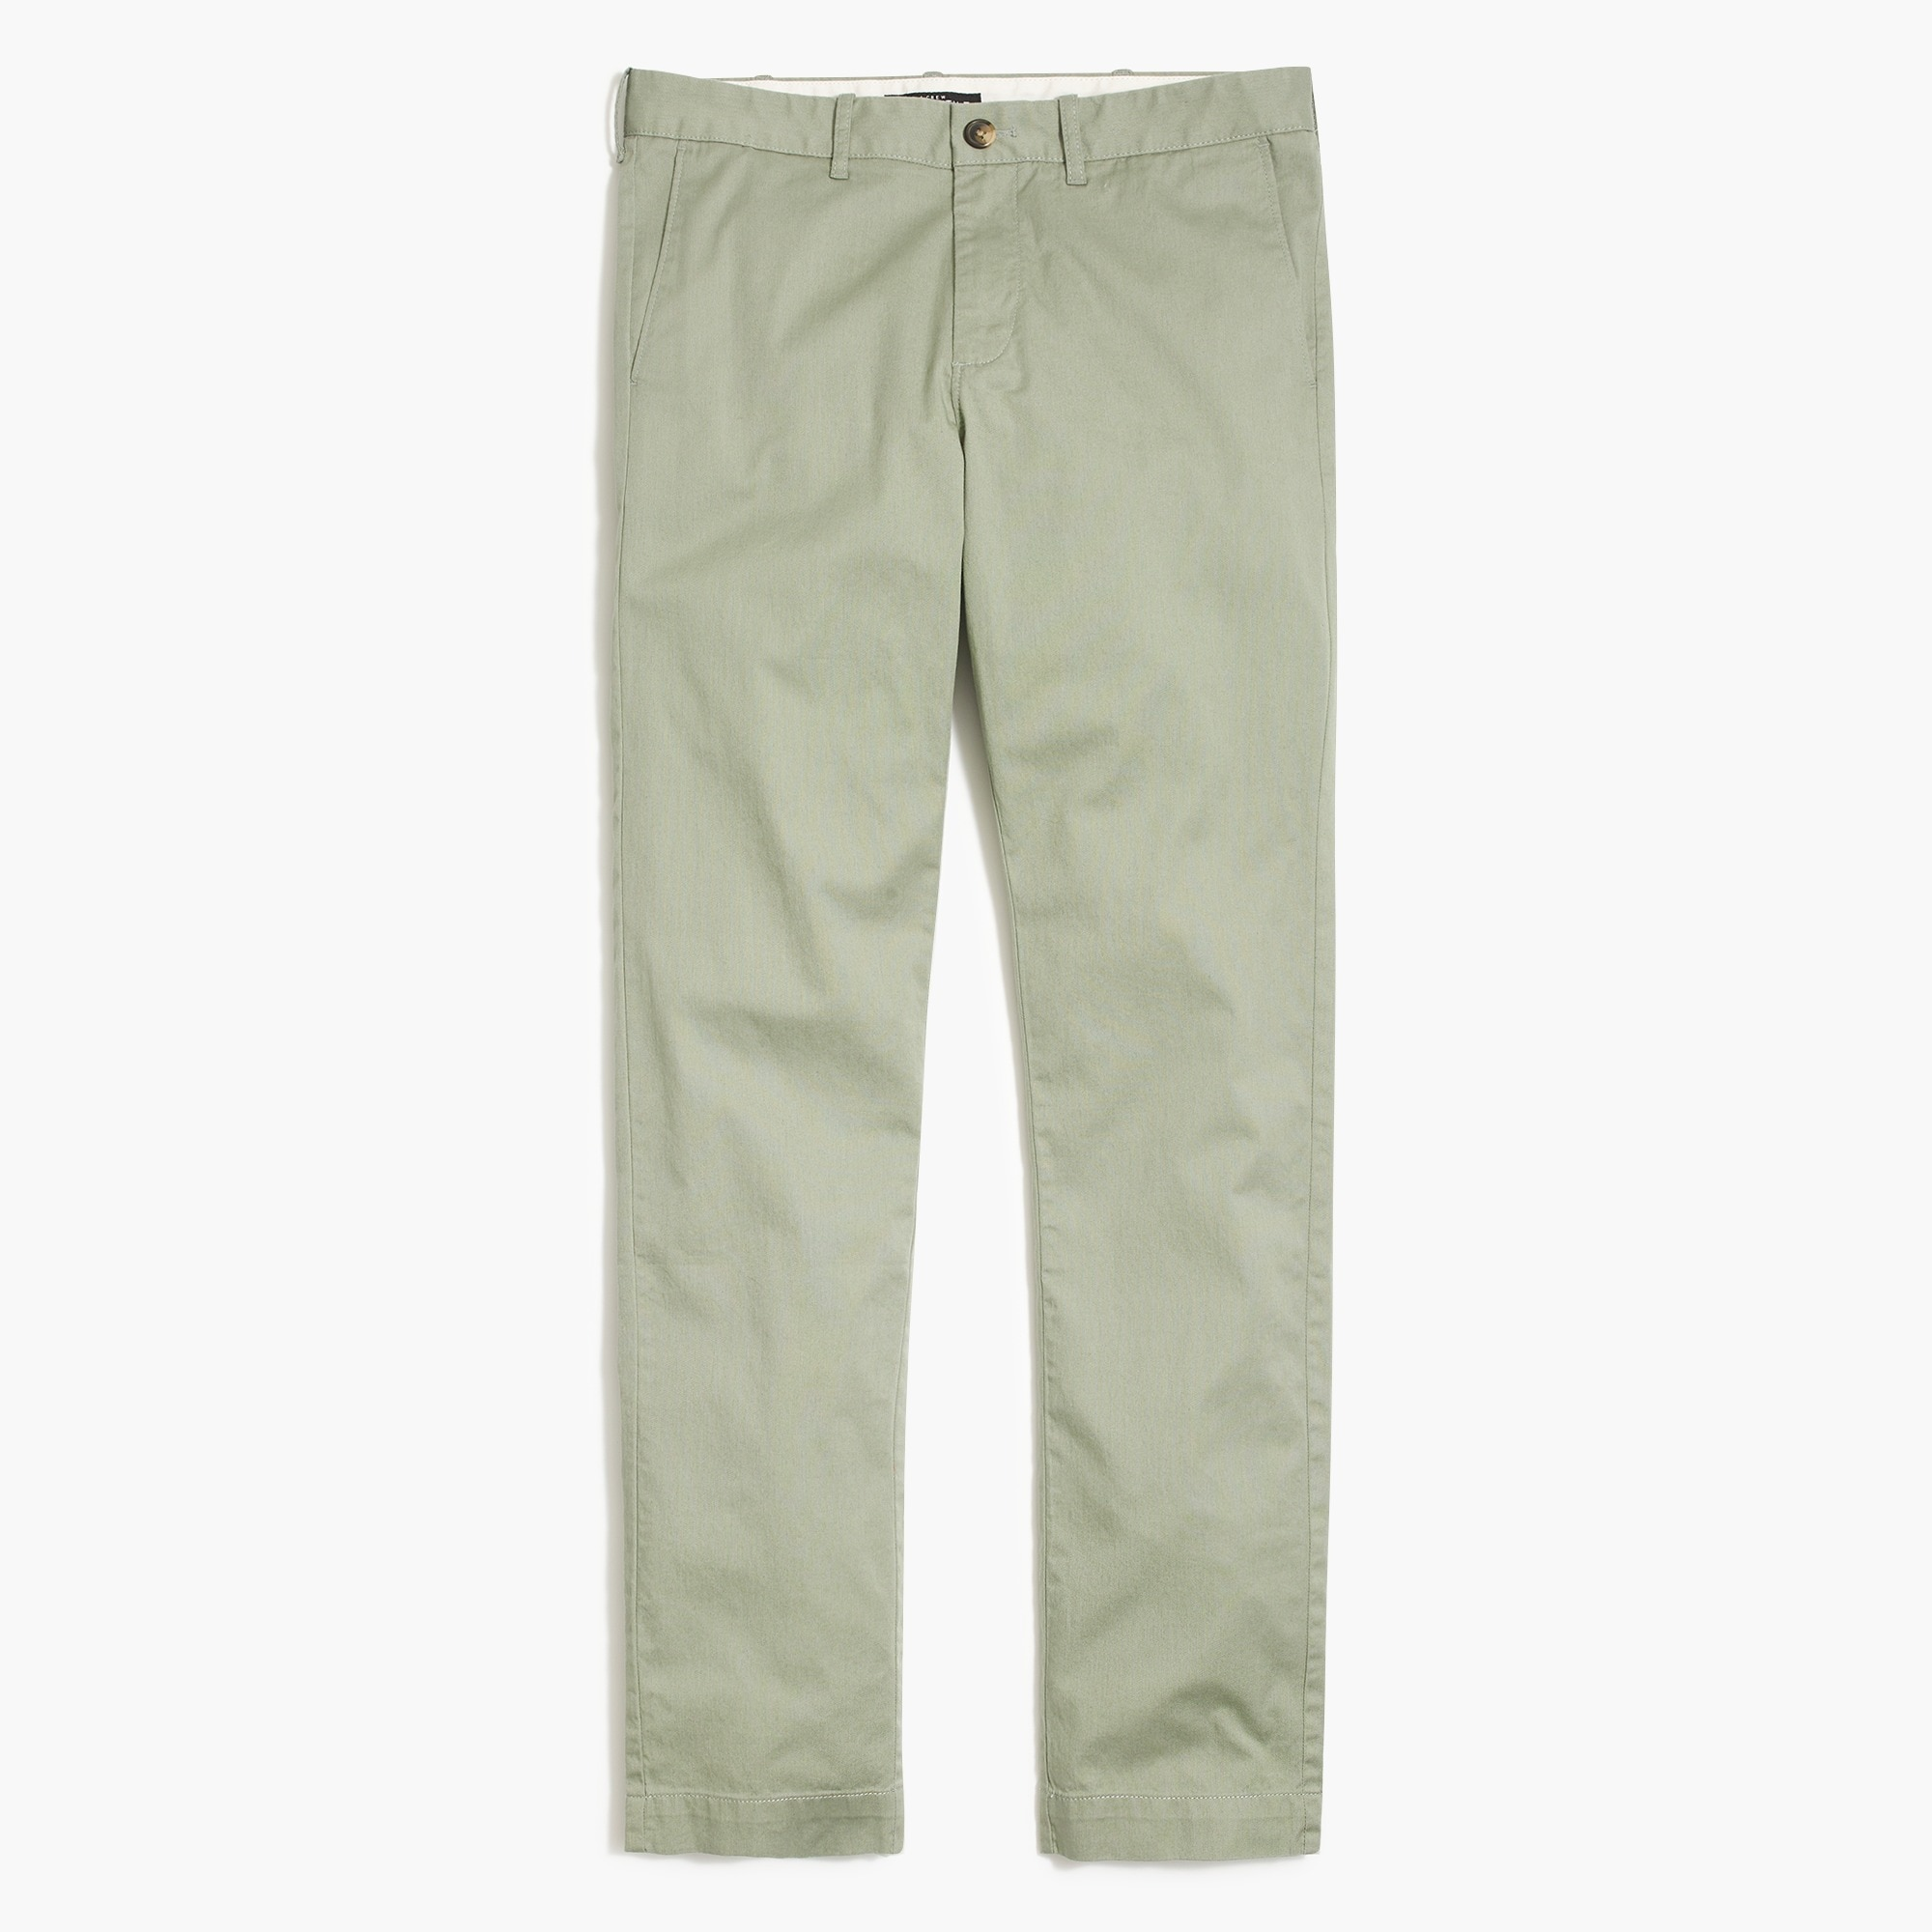 Slim-fit lightweight flex chino